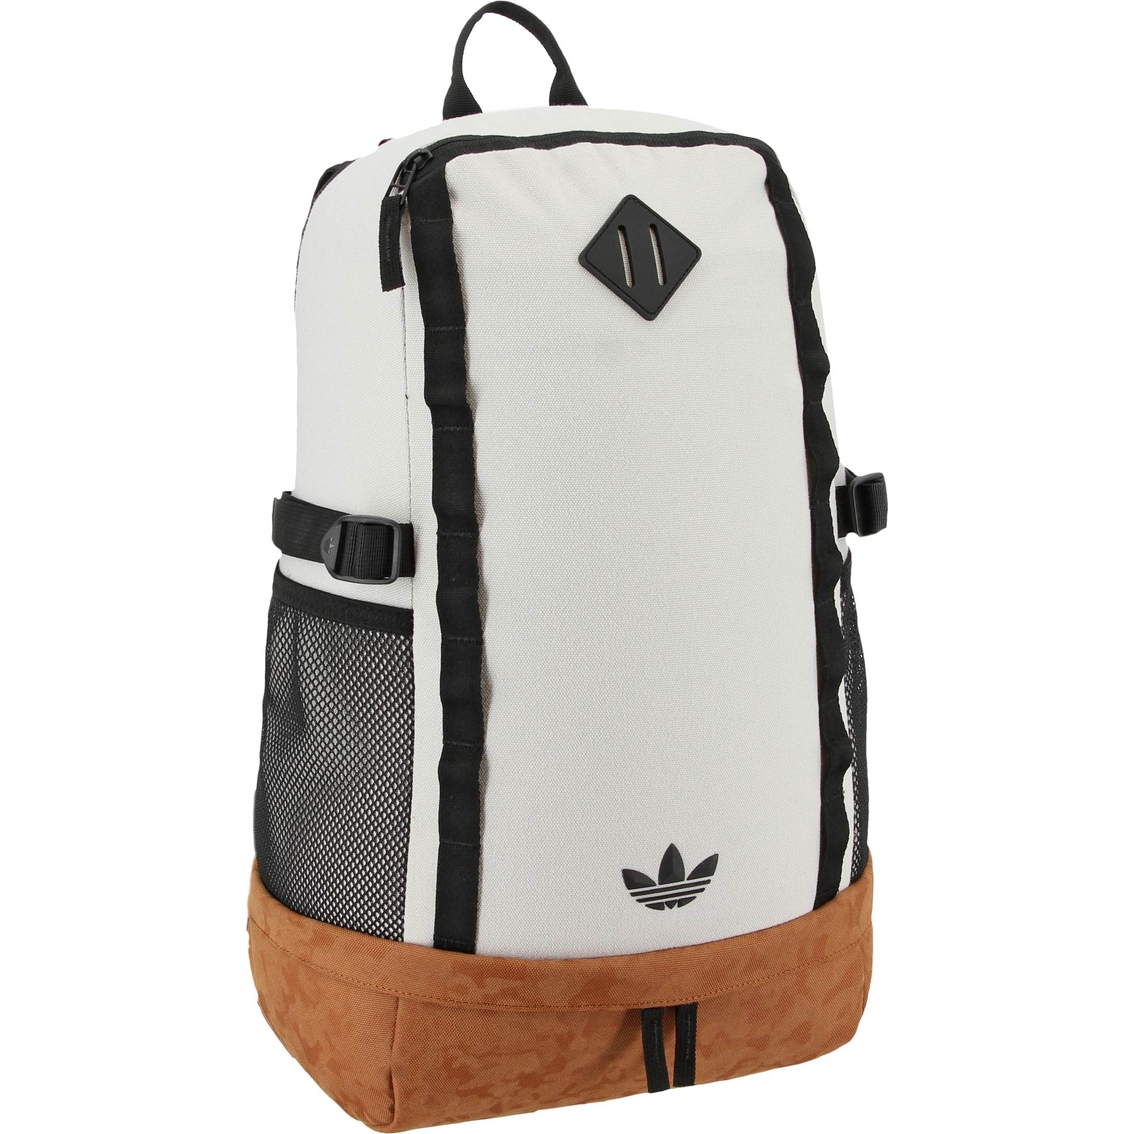 6cca9c17ff68 Adidas Originals Create Ii Backpack